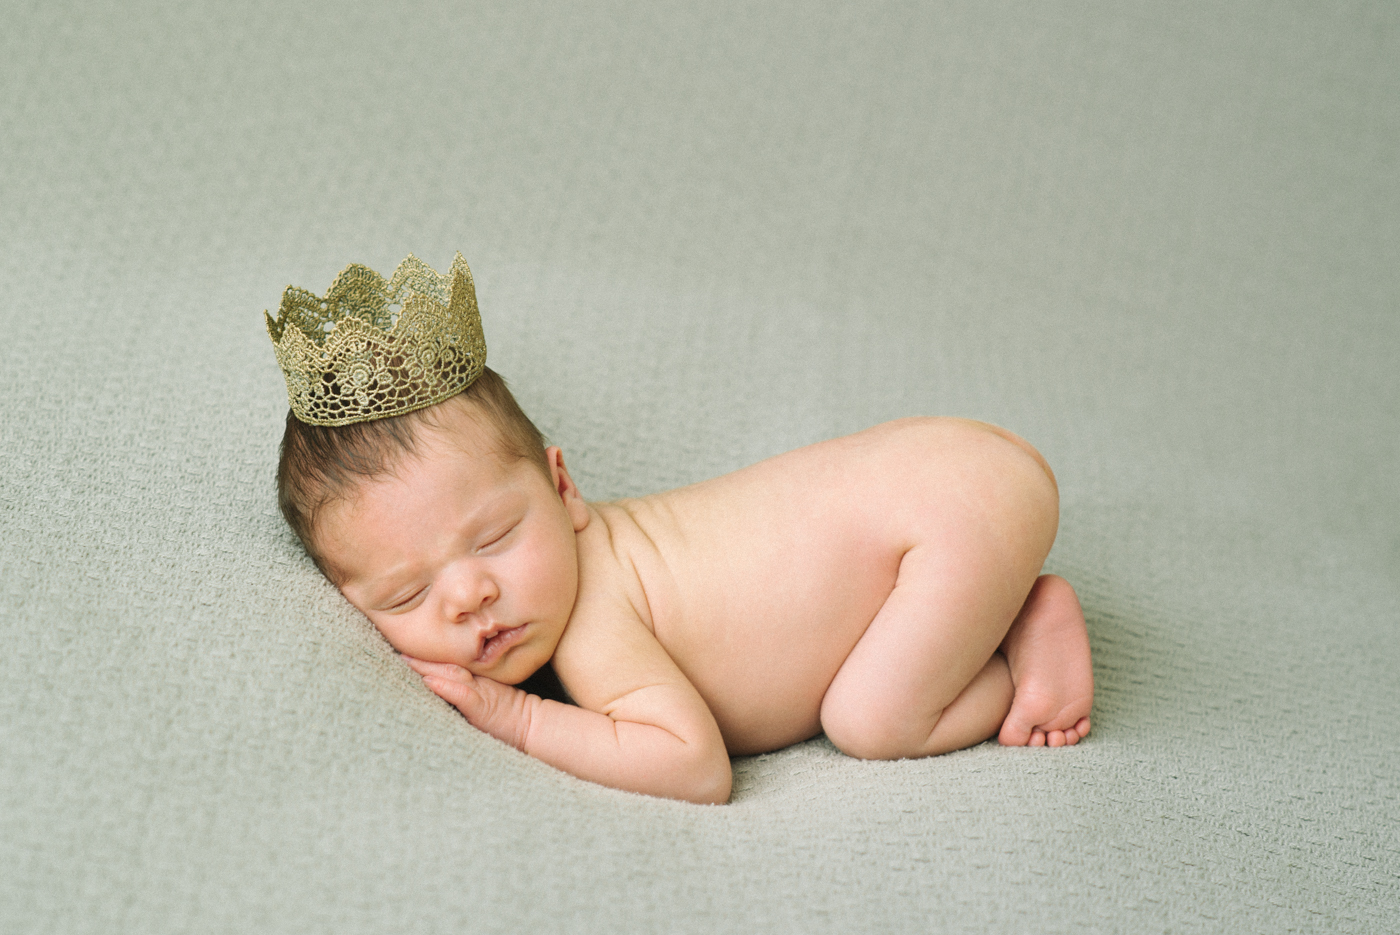 best-newborn-photographer-portland-oregon-shelley-marie-photography-baby-girl-golden-crown-sleeping-38